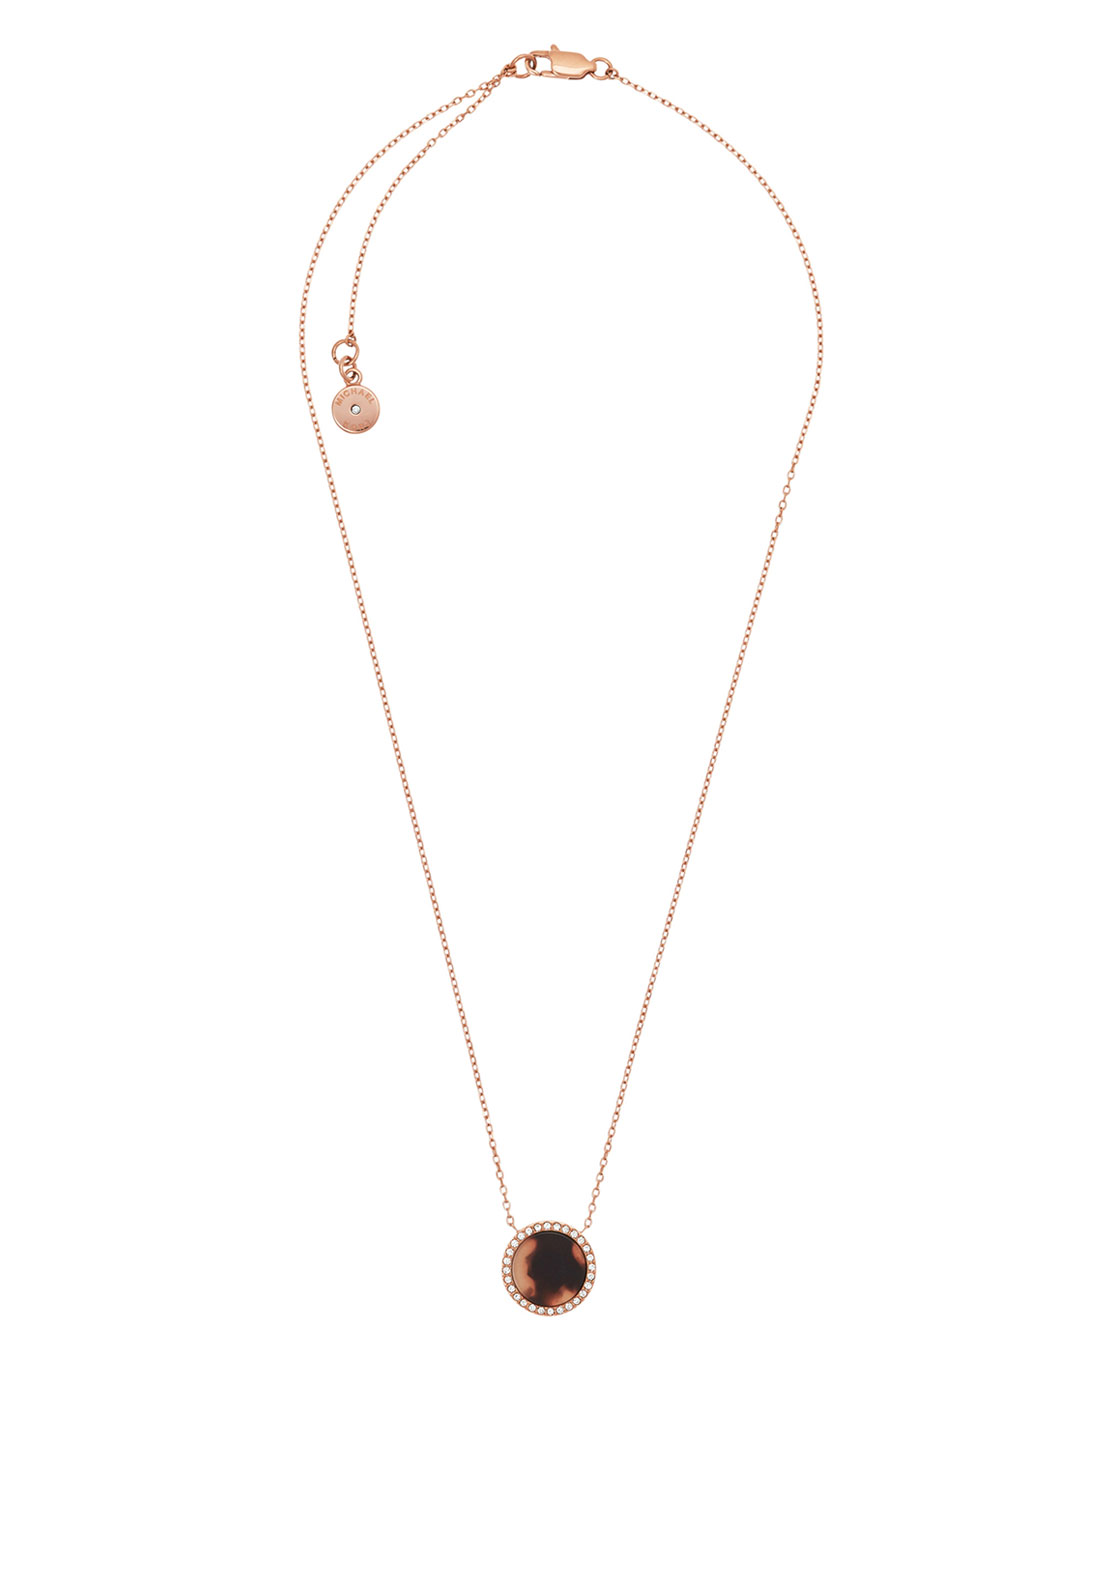 Michael Kors Tortoise Acetate Necklace, Rose Gold